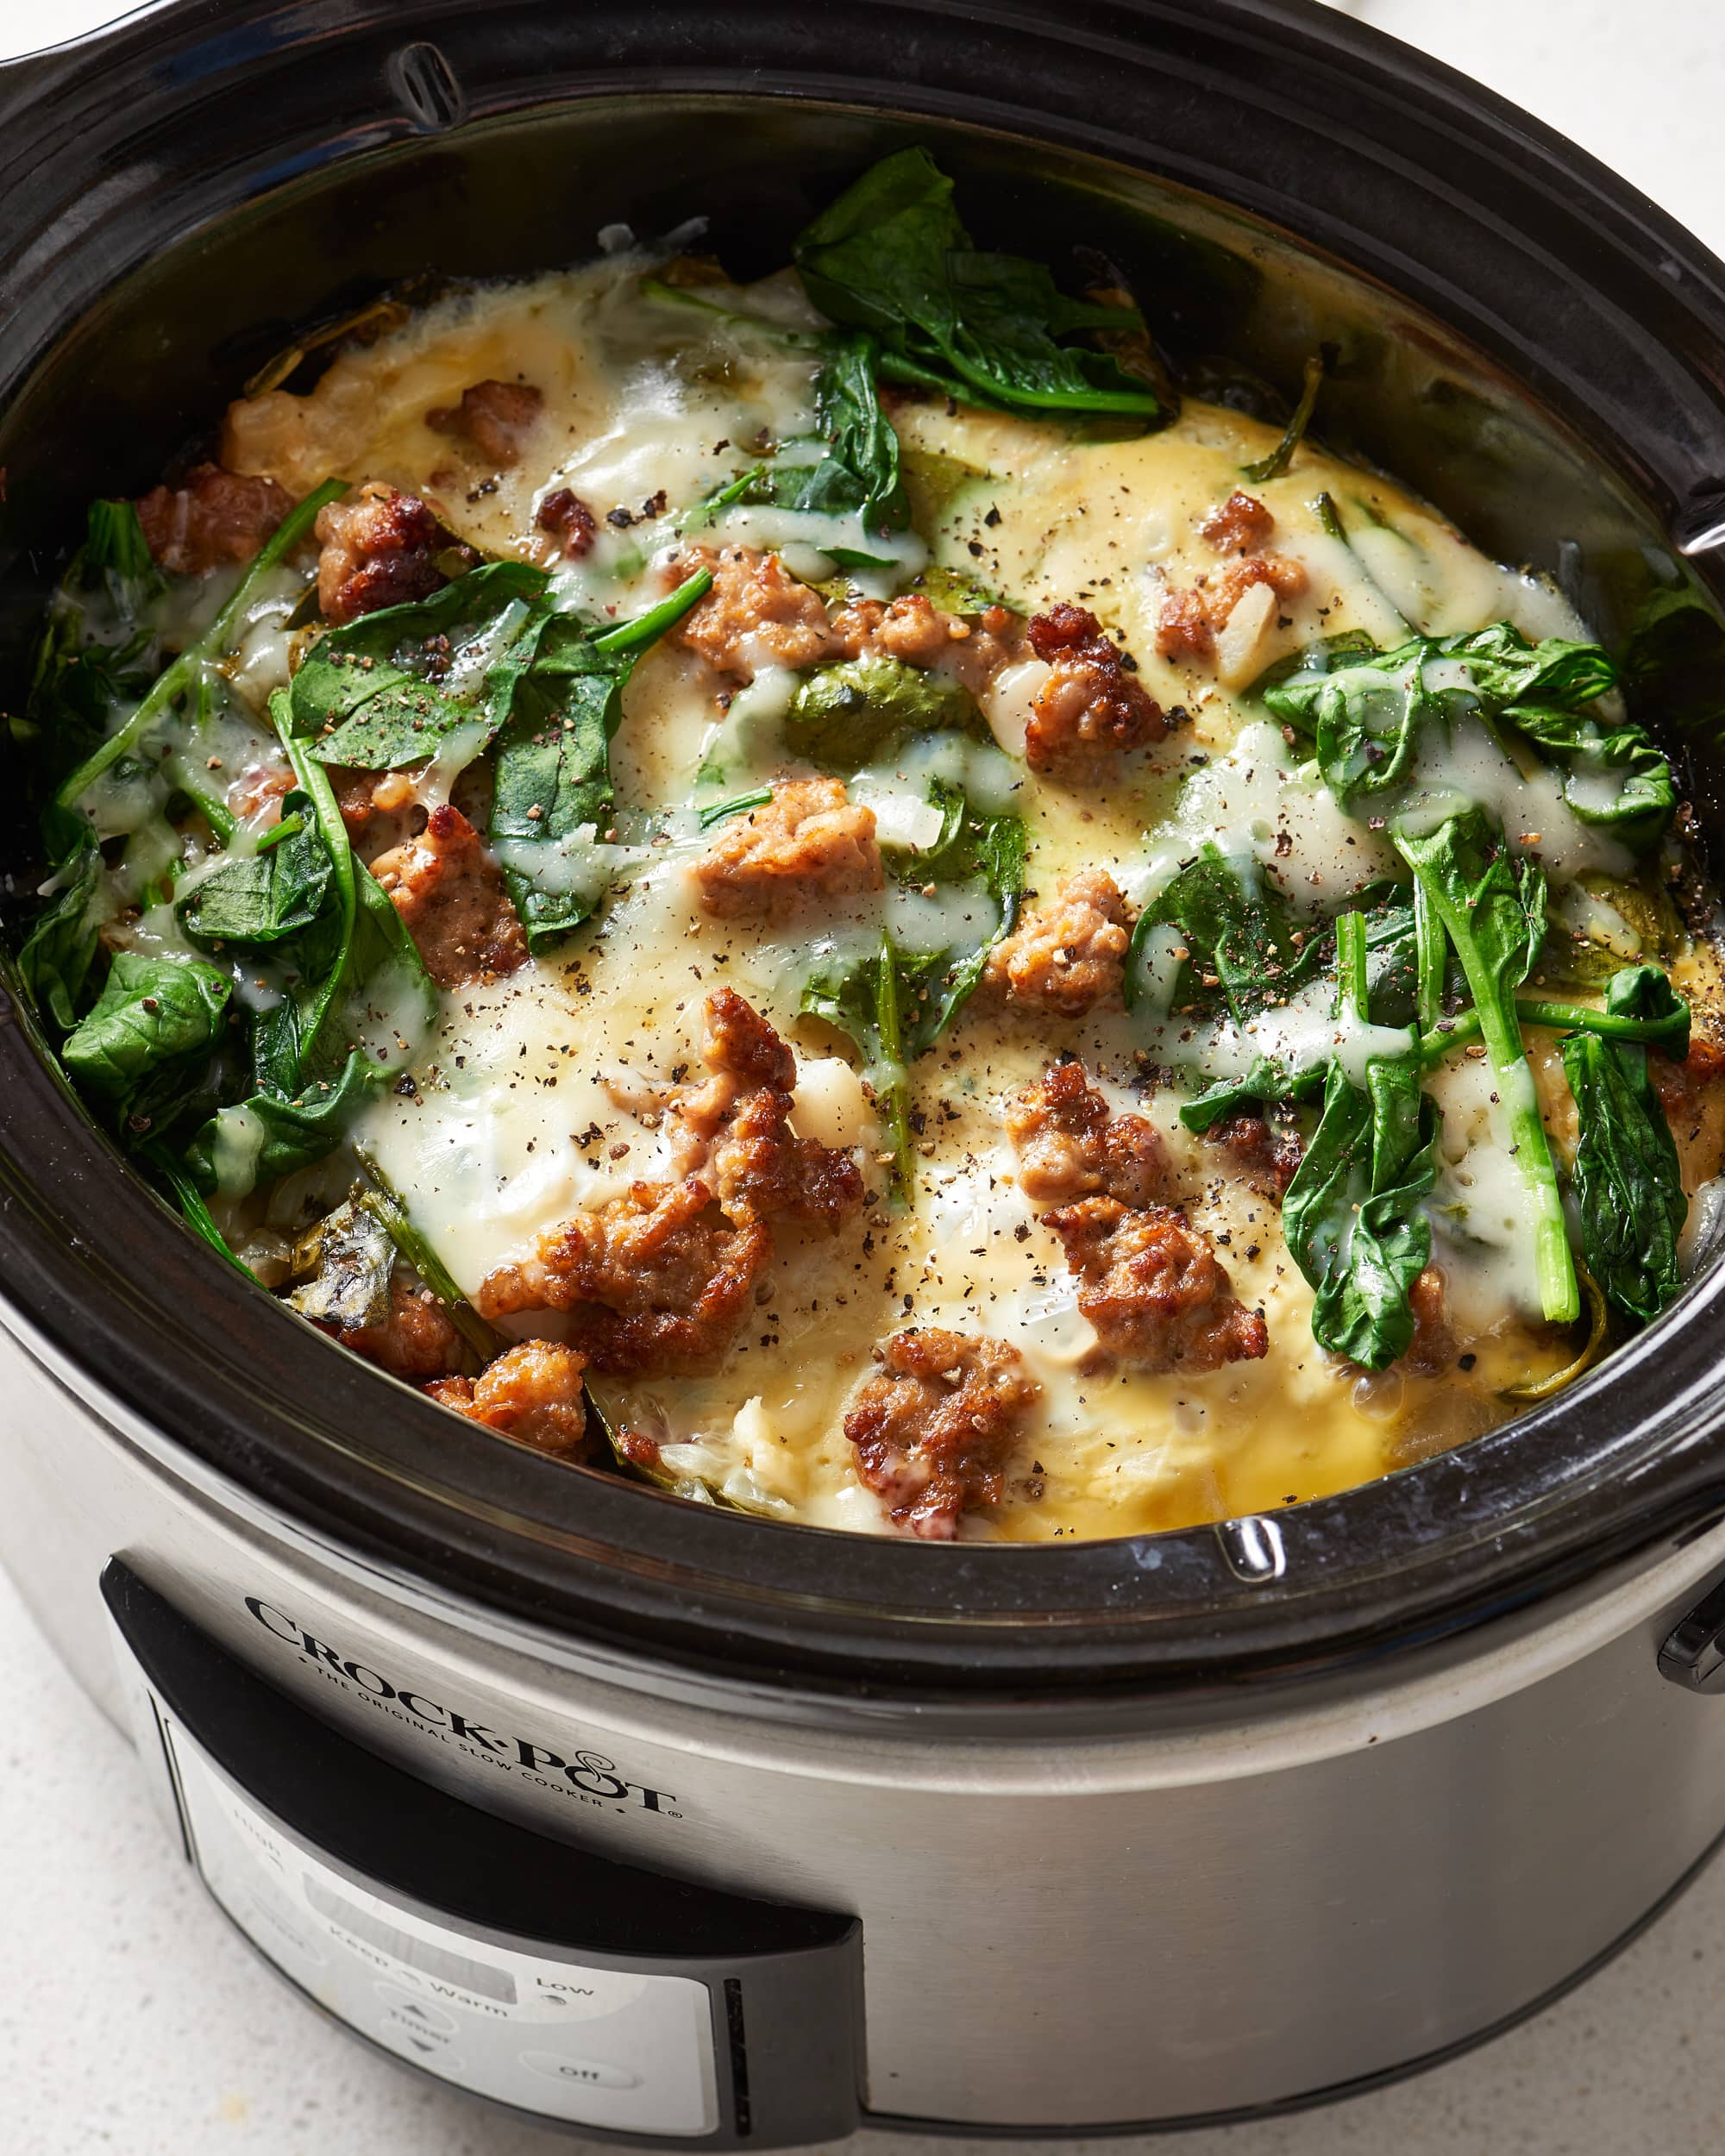 Recipe: Slow Cooker Sausage and Spinach Breakfast Casserole